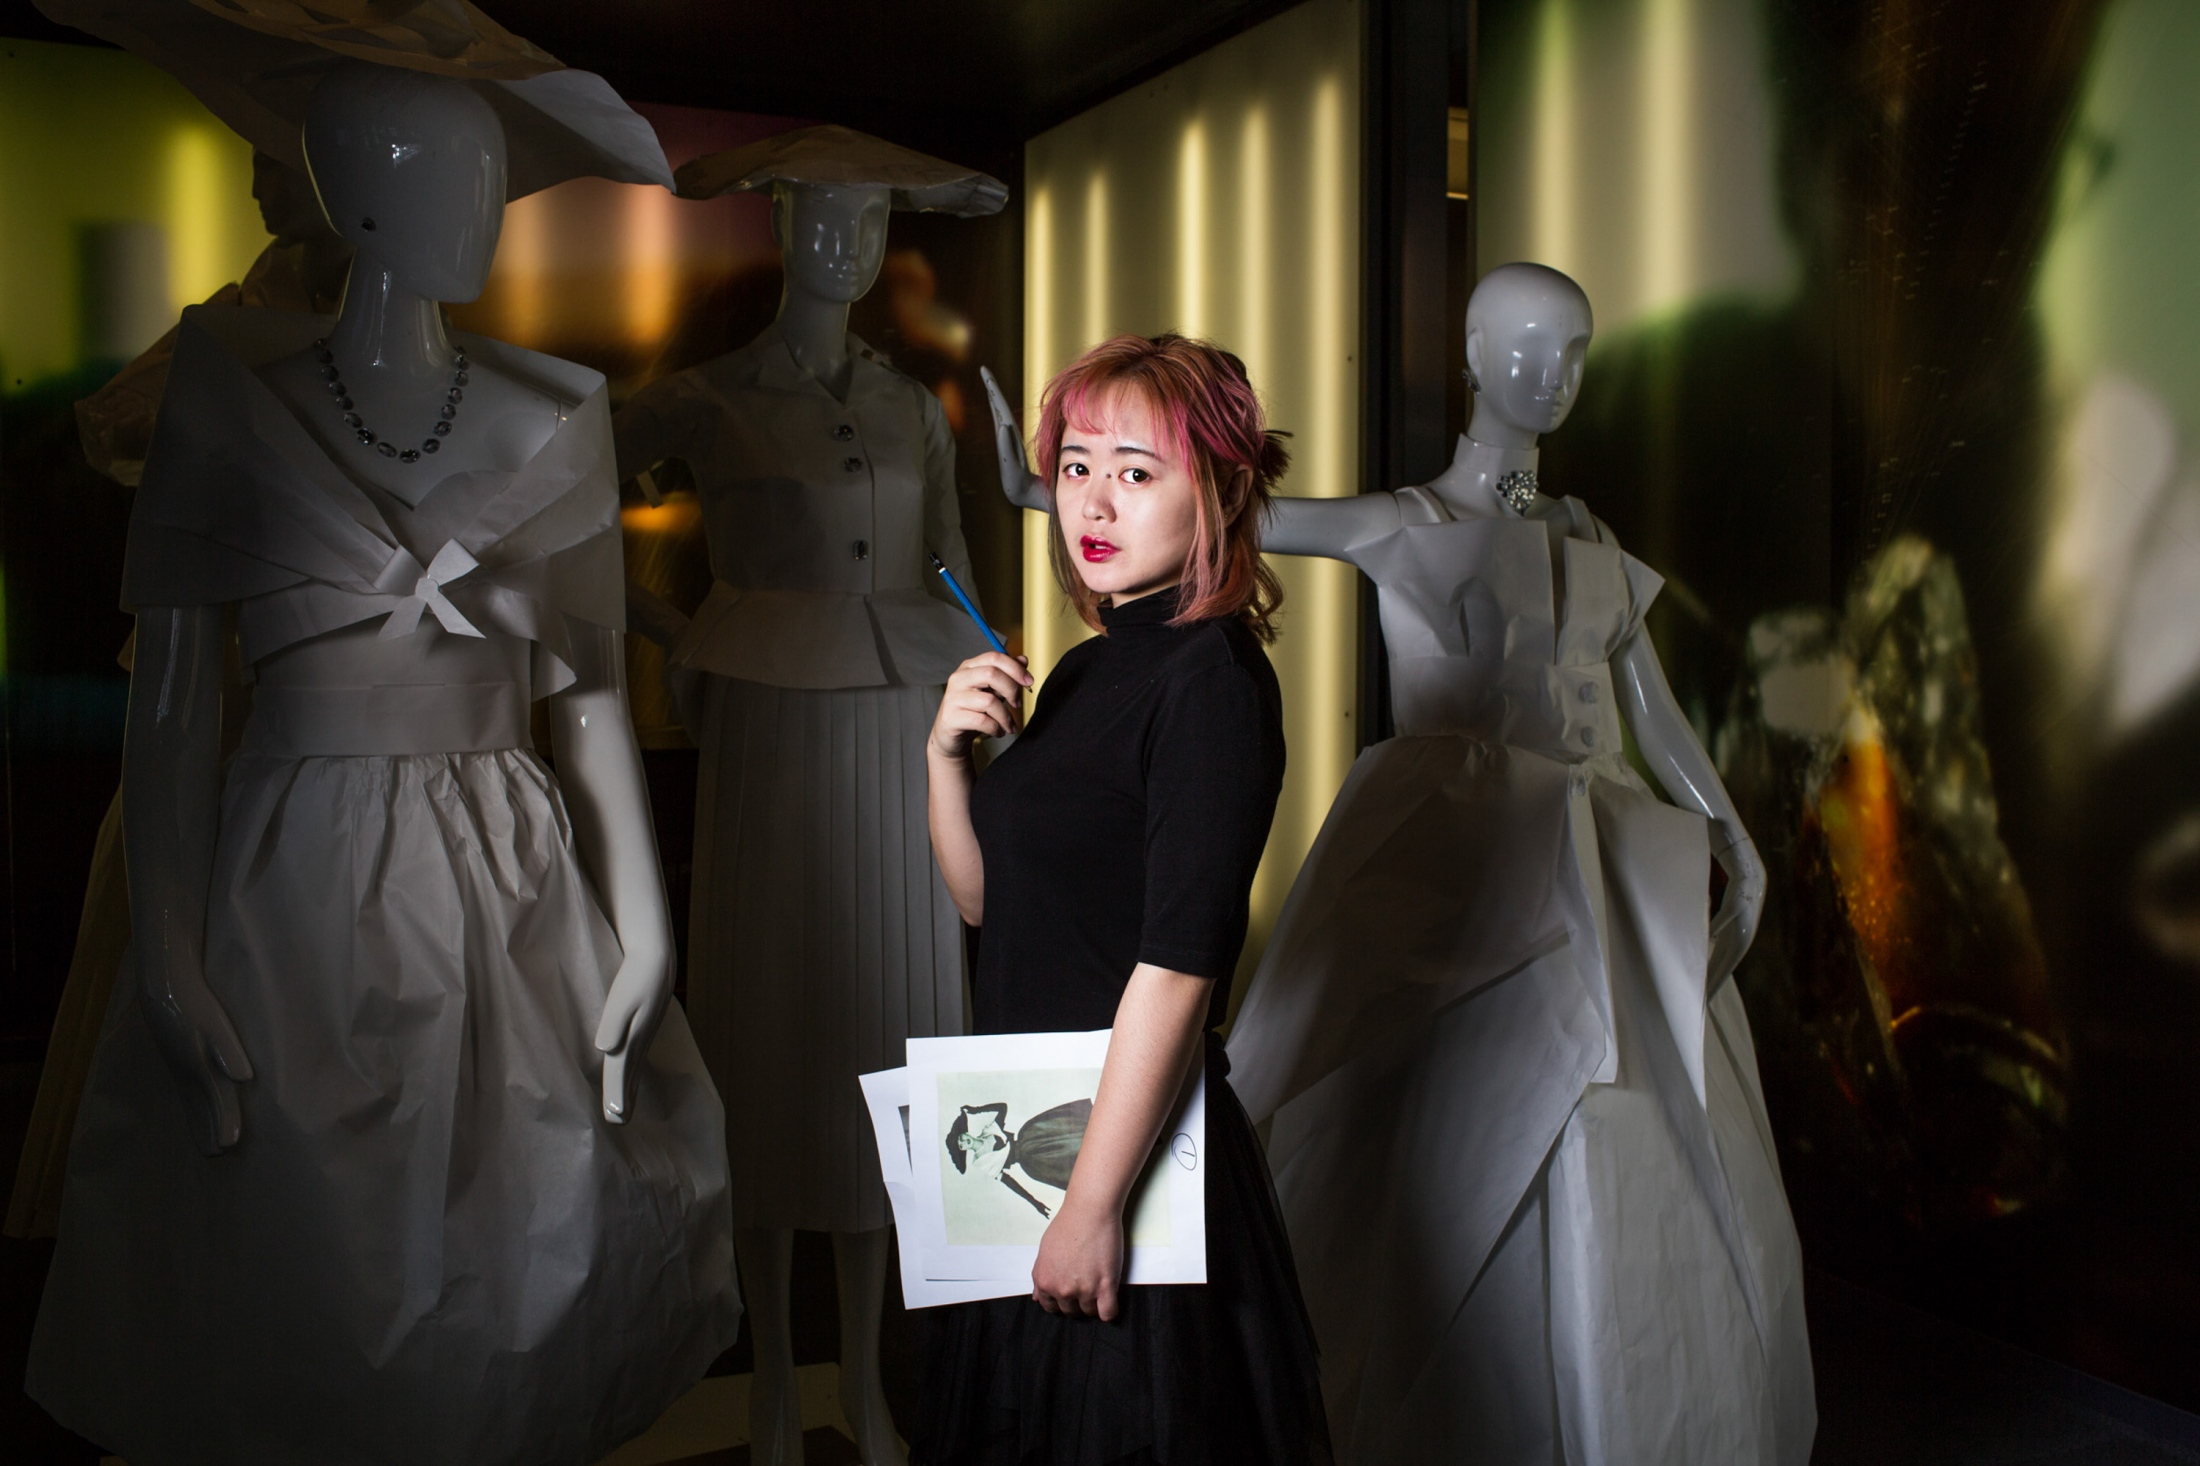 Guo Jia, an industrial design student at Syracuse University, stands for a portrait.